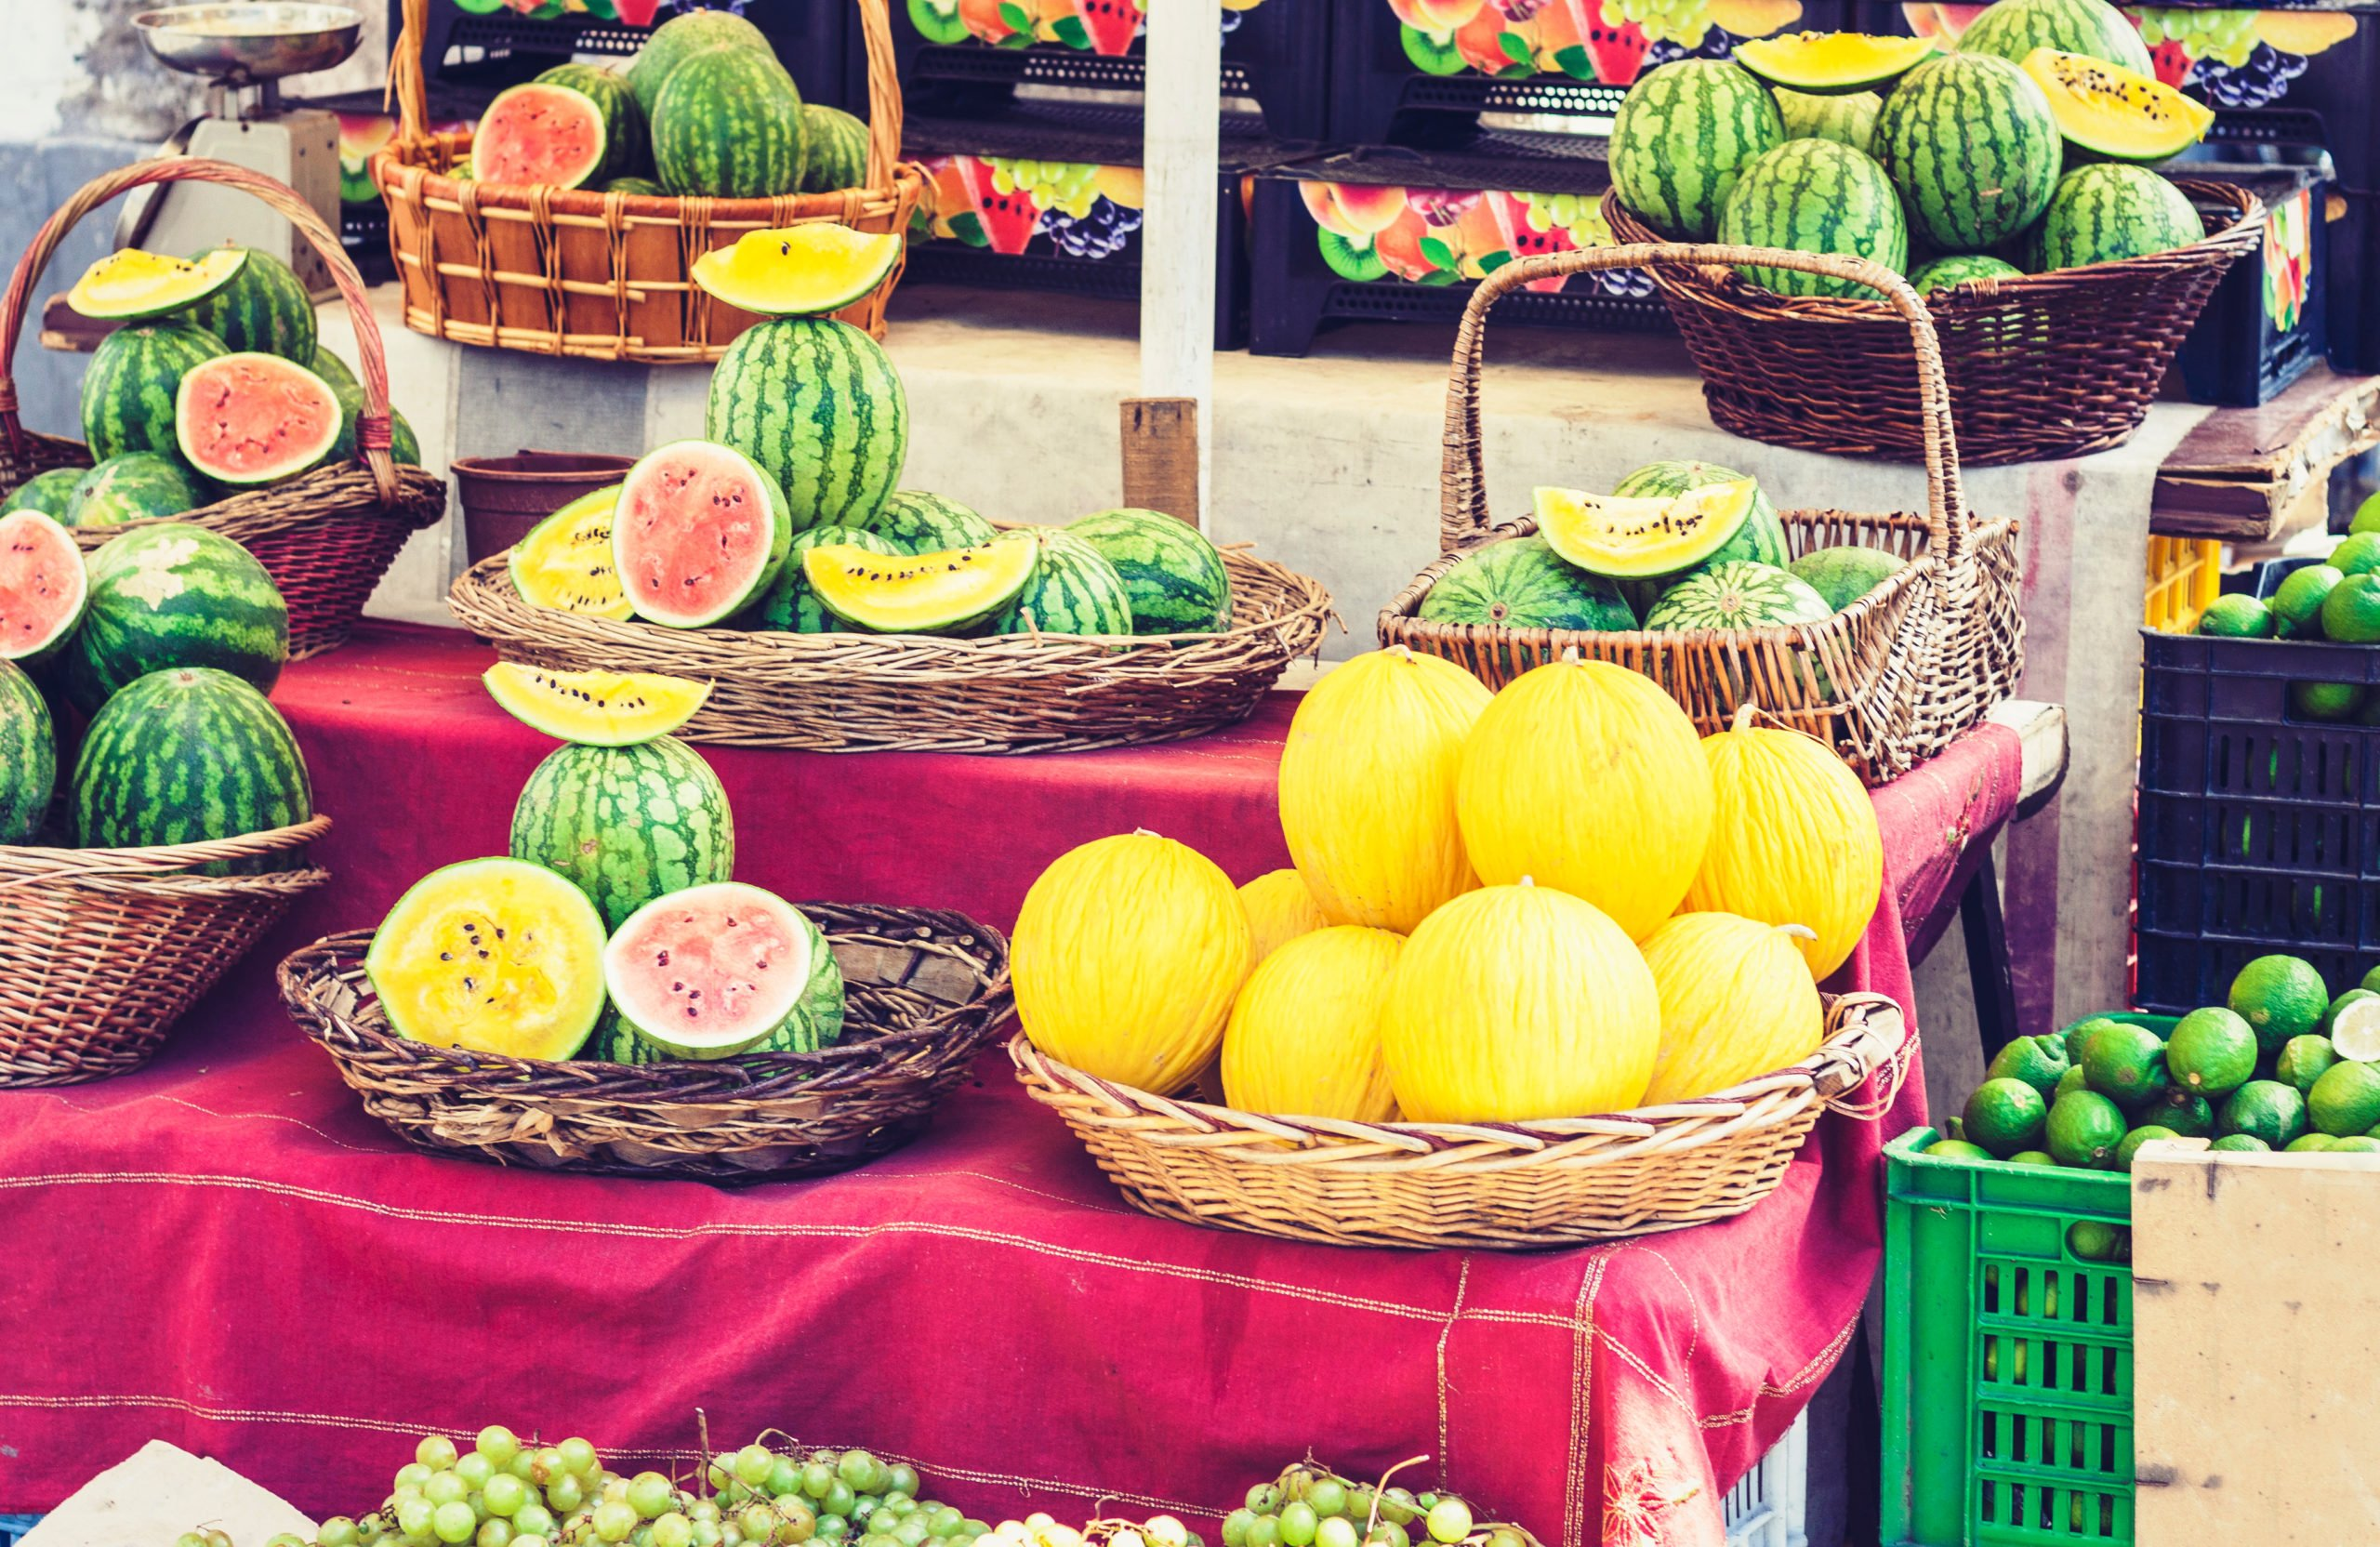 Hear Amazing Stories About The City And The Sicilian Life While Walking Over The Colorful Market On The Catania City And Street Food Tasting Tour